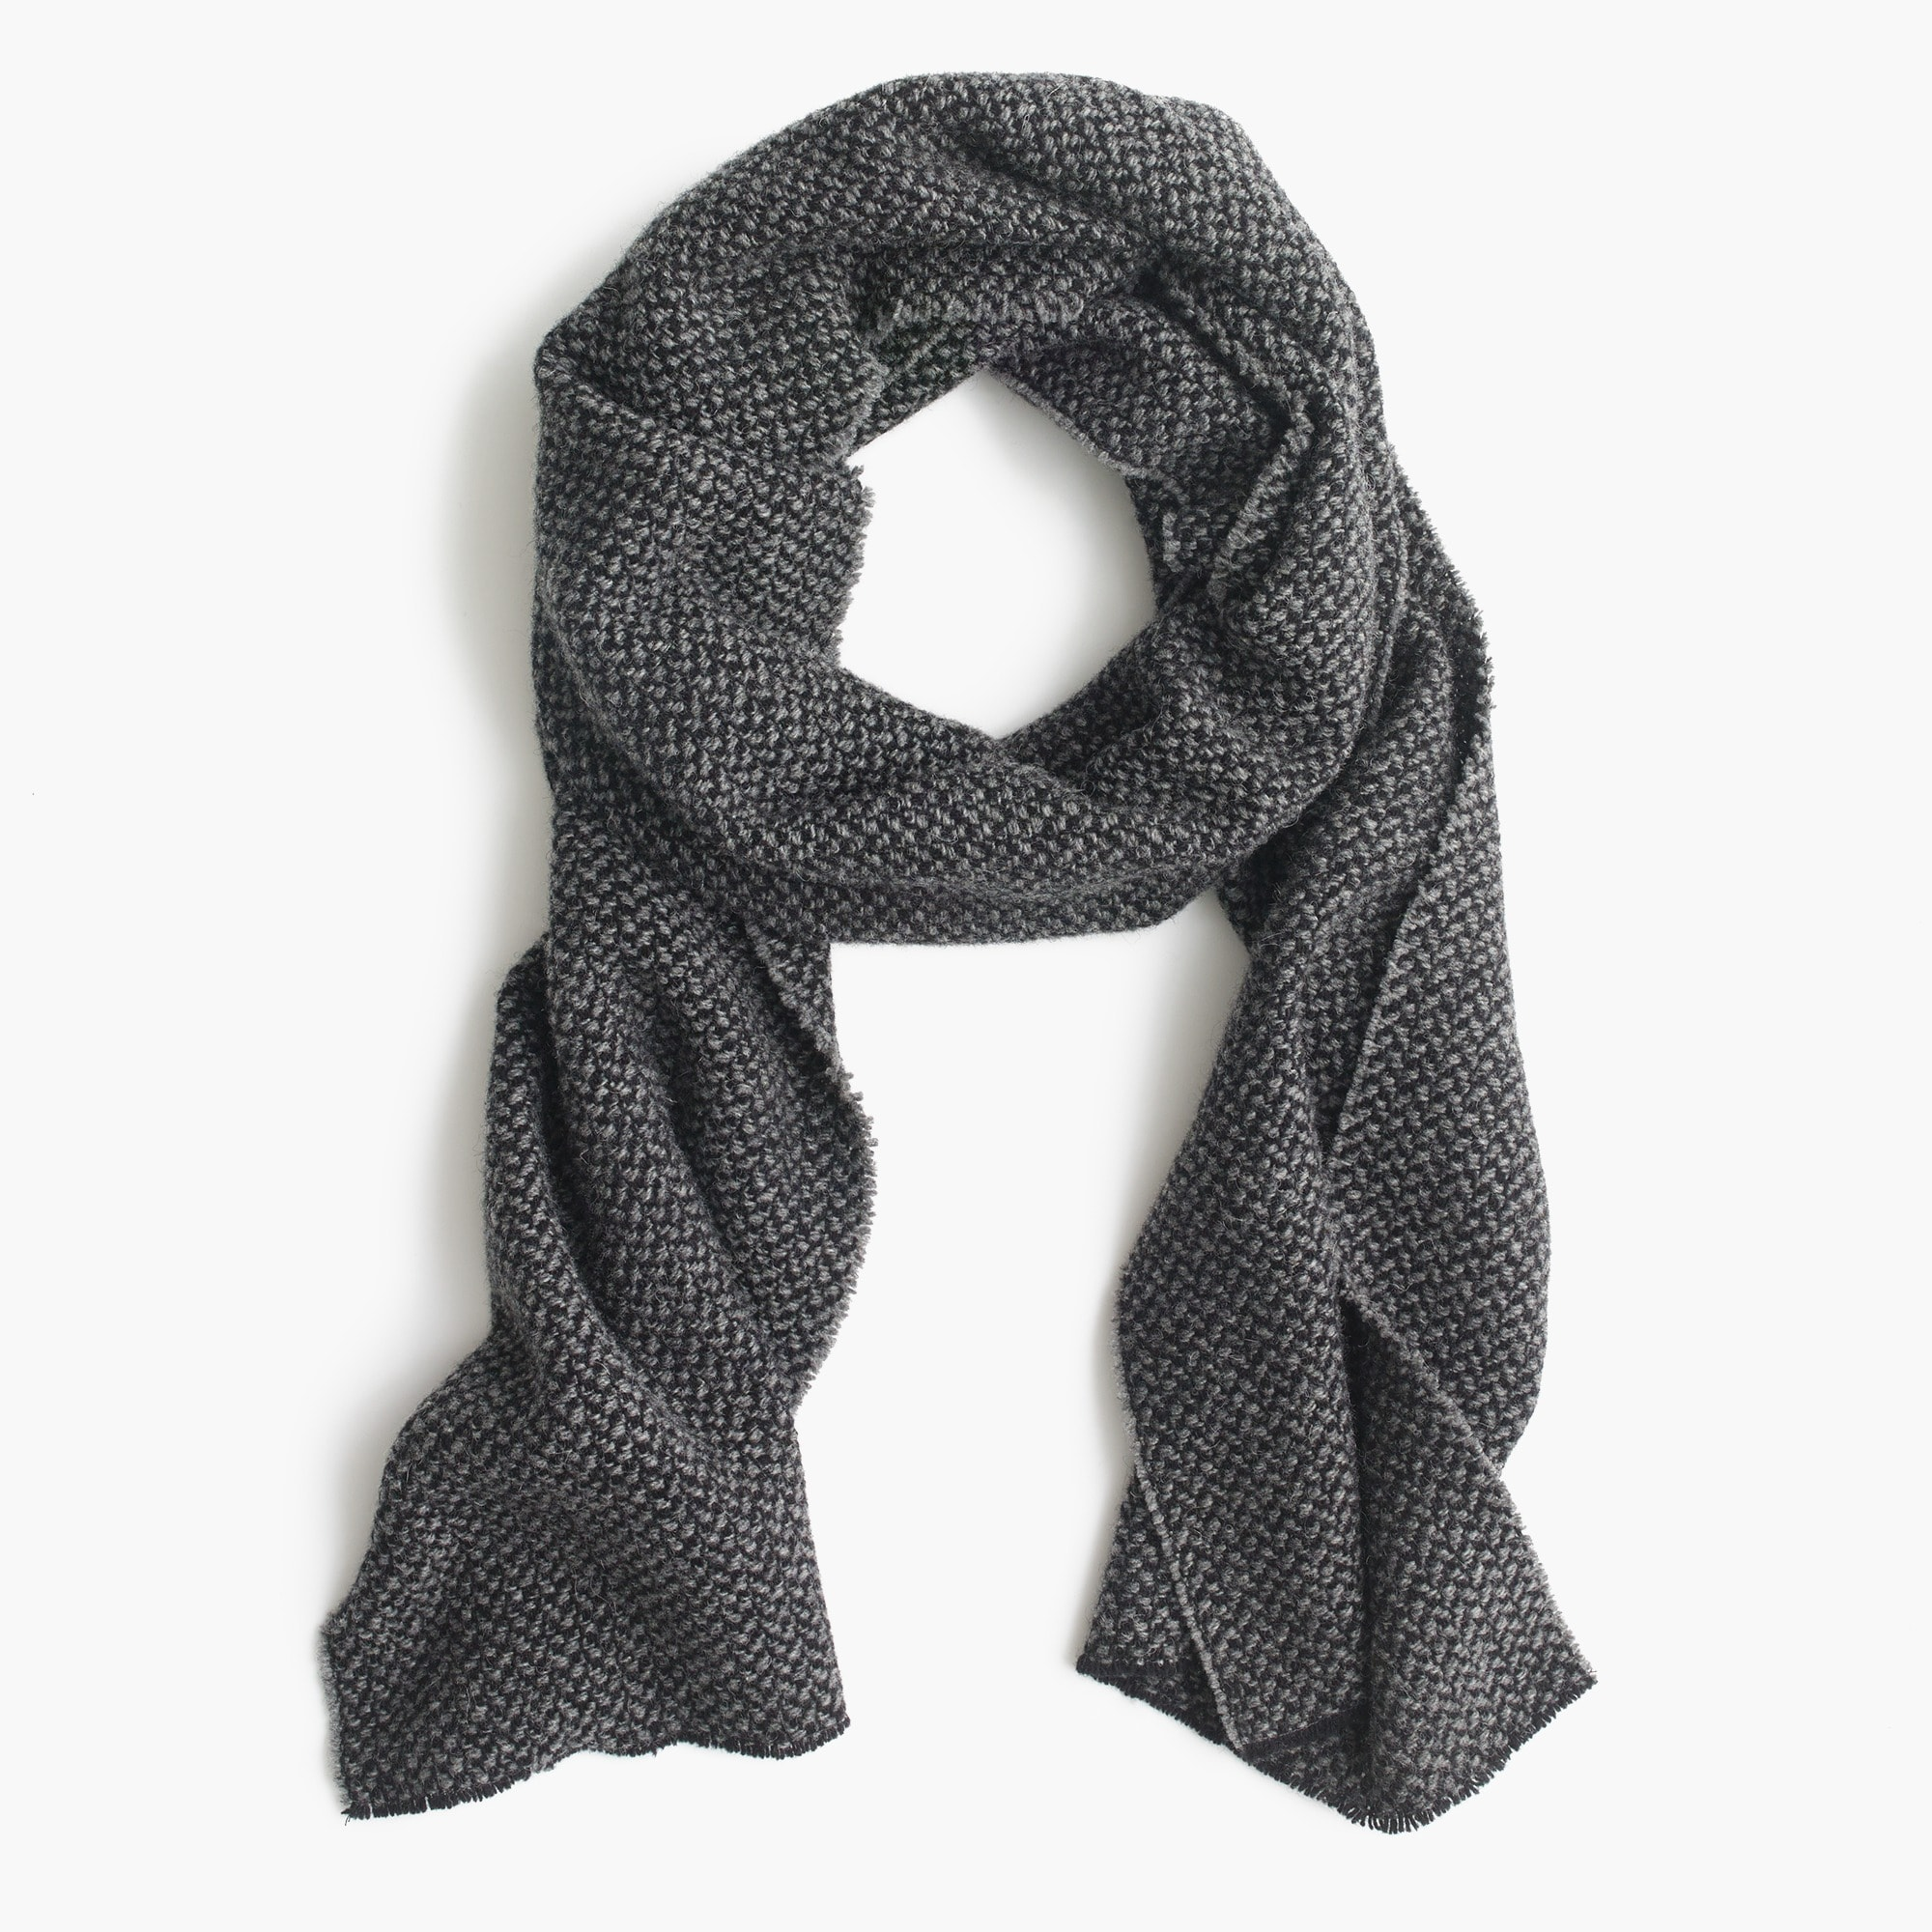 Bird's-eye wool scarf